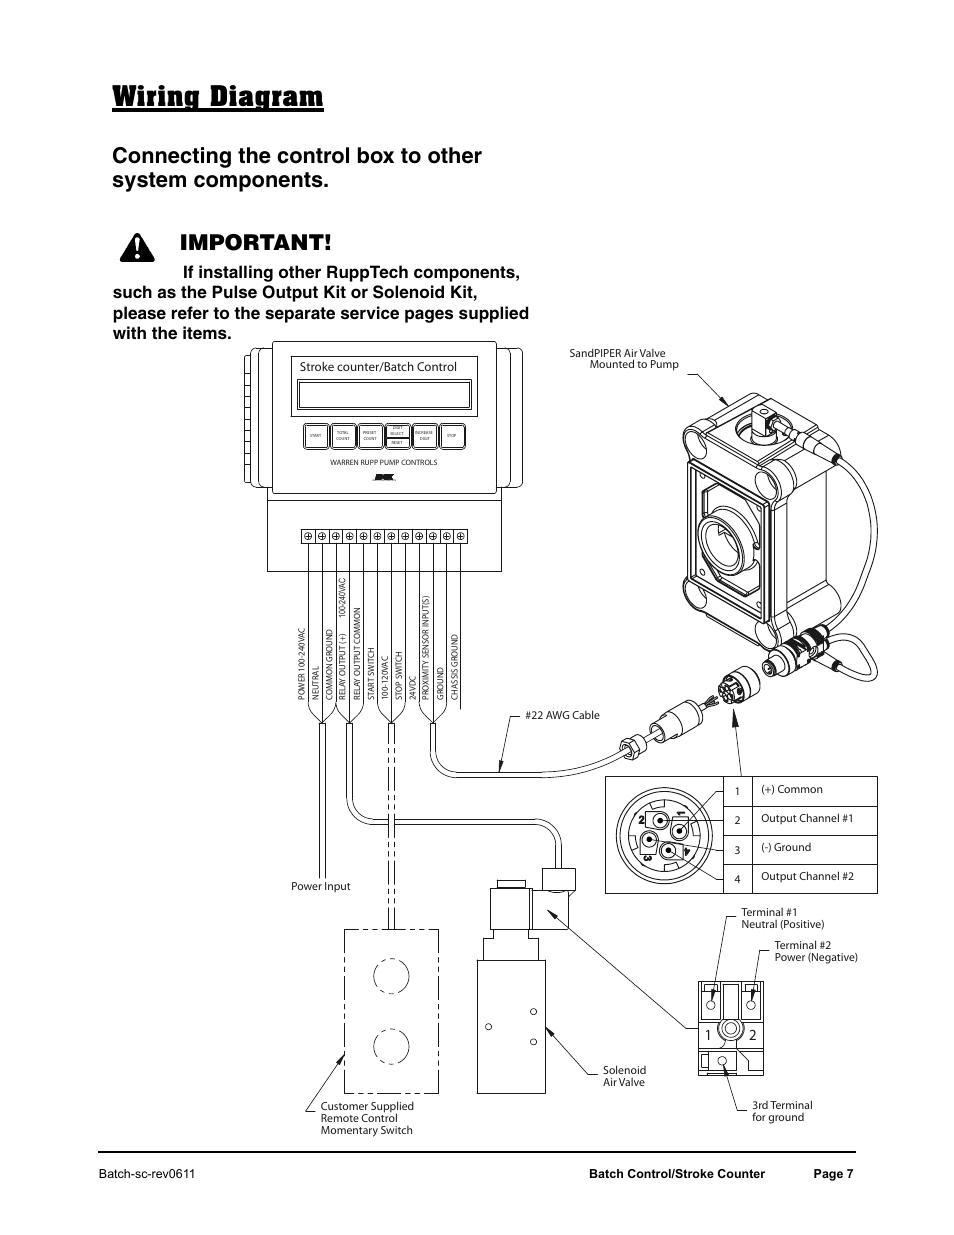 Wiring diagram, Important, Wiring diagram for interface | SANDPIPER  RuppTech Stroke Counter/Batch Control User Manual | Page 7 / 7